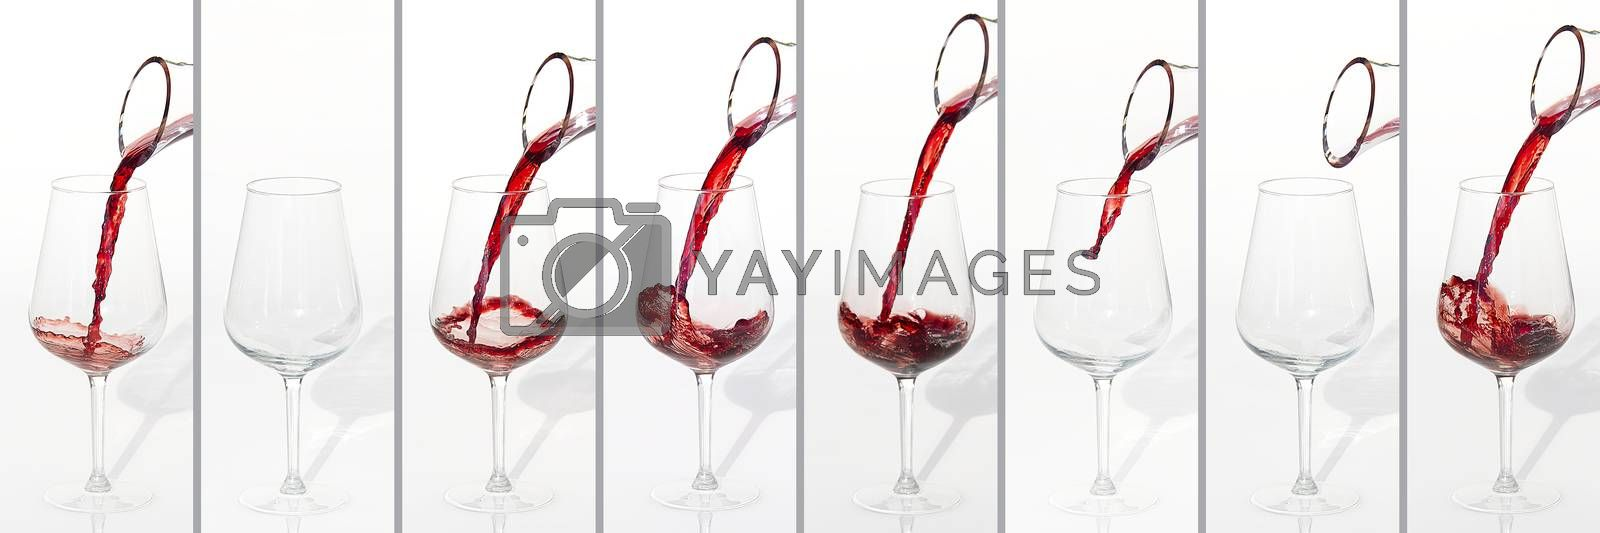 Royalty free image of Sommelier pours red wine from decanter to wineglass on white background. panoramic shoot or banner. collage by PhotoTime